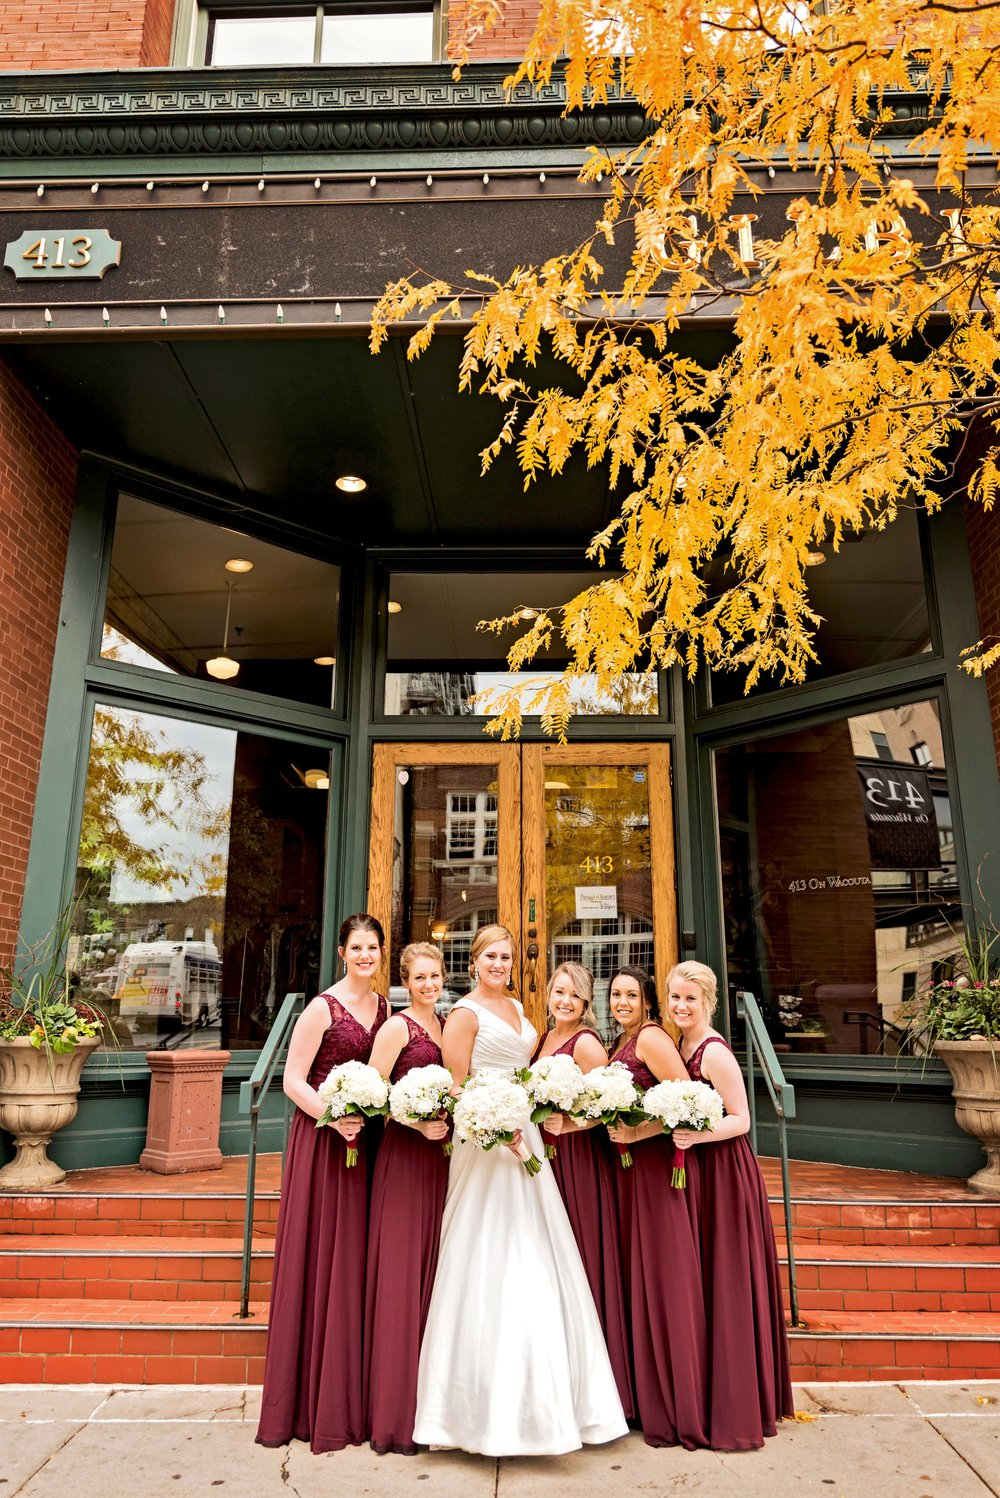 2018-Real-Wedding-Megan-Brenden-Rotella-Photography_0449.jpg